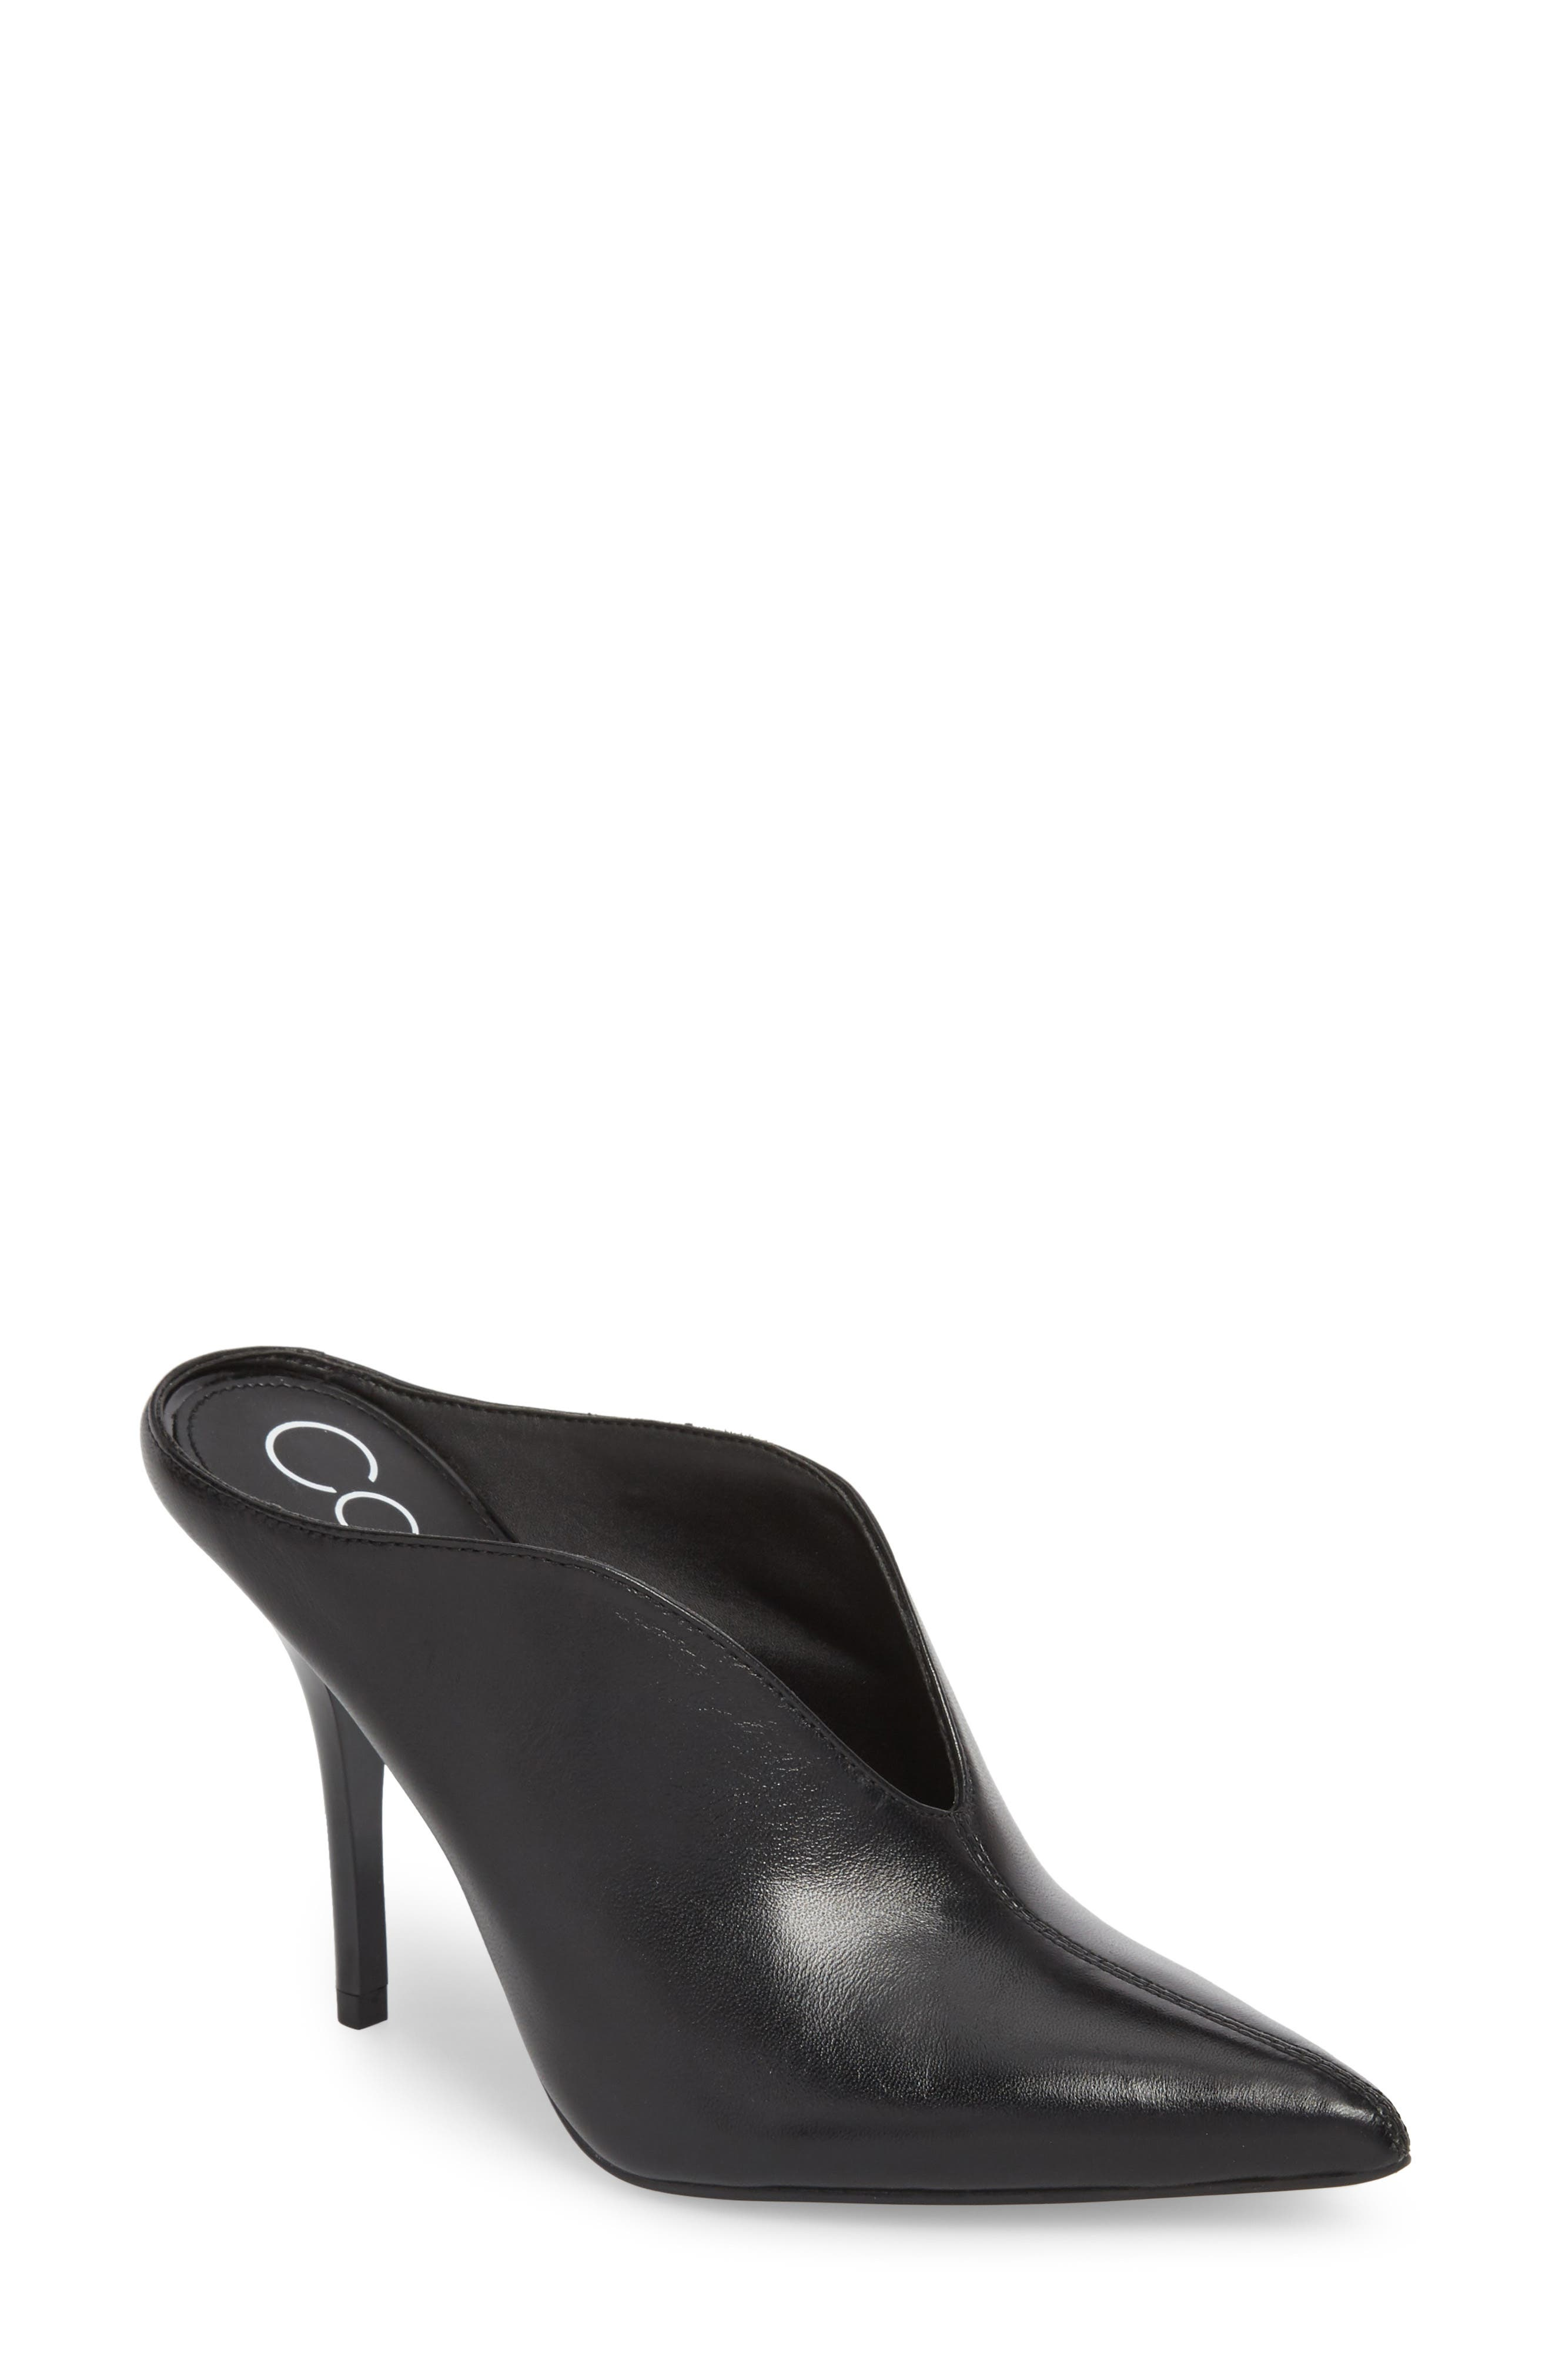 CALVIN KLEIN, Mallie Pointy Toe Mule, Main thumbnail 1, color, BLACK LEATHER